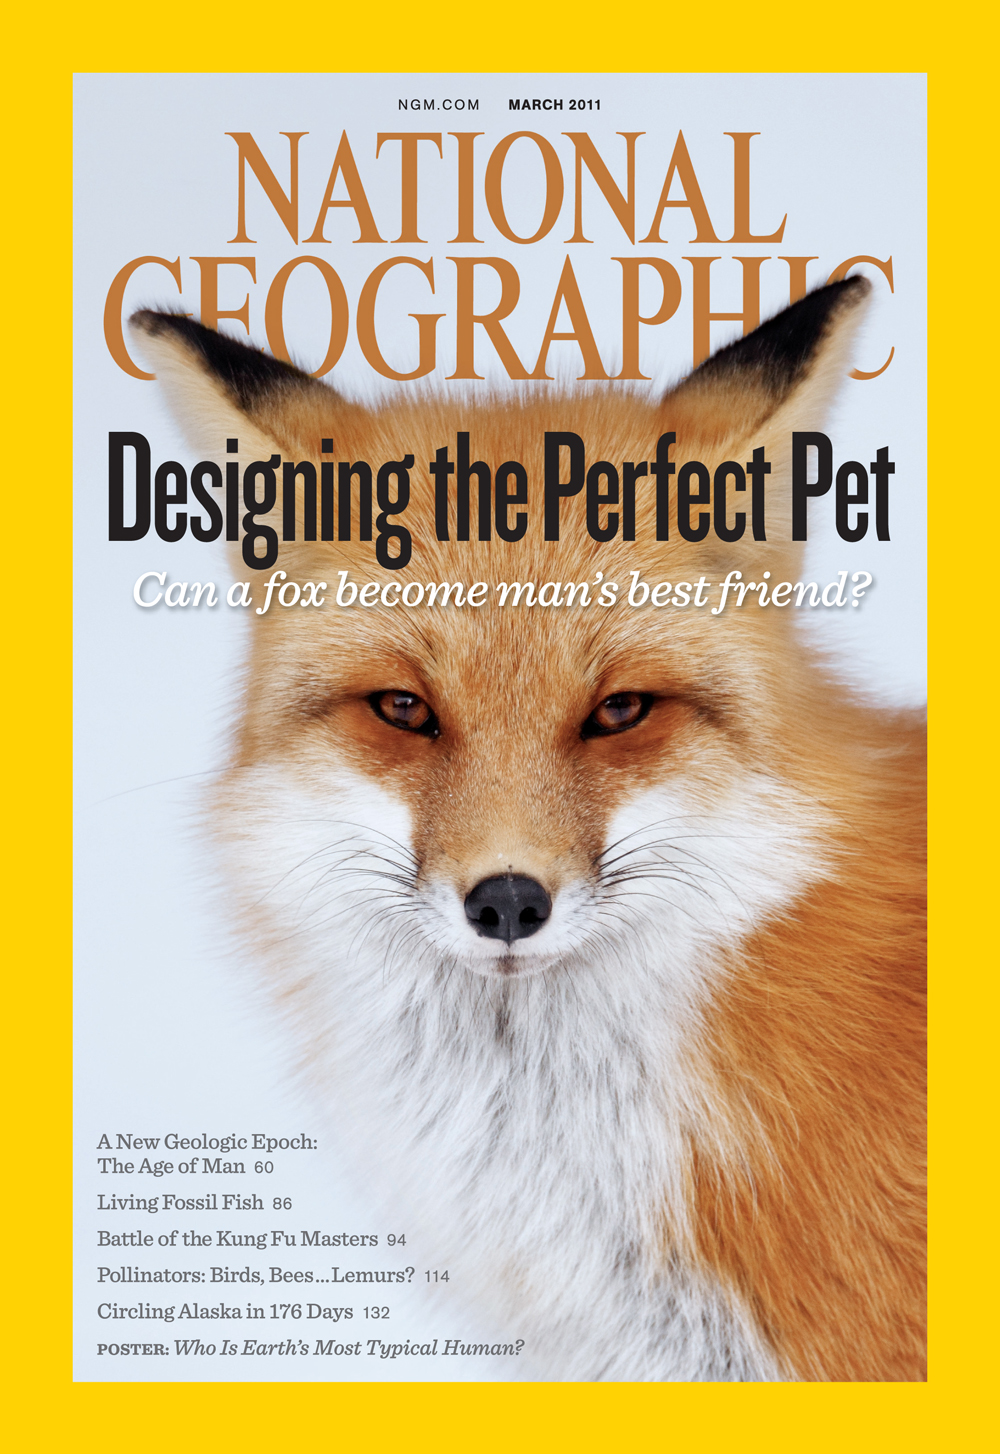 FOR YOUR ONE-TIME EXCLUSIVE USE ONLY AS A TIE-IN WITH THE MARCH 2011 ISSUE OF NATIONAL GEOGRAPHIC MAGAZINE. NO SALES, NO TRANSFERS. ©2011 National Geographic SocietyNational Geographic and the Yellow Border Design are registered trademarks of the National Geographic Society.The cover may not be altered, changed, cropped, reproduced or modified without written permission from the National Geographic Society. Any uses, other than what is expressly agreed to in a contract or other written communication, will require prior written approval from the National Geographic Society.